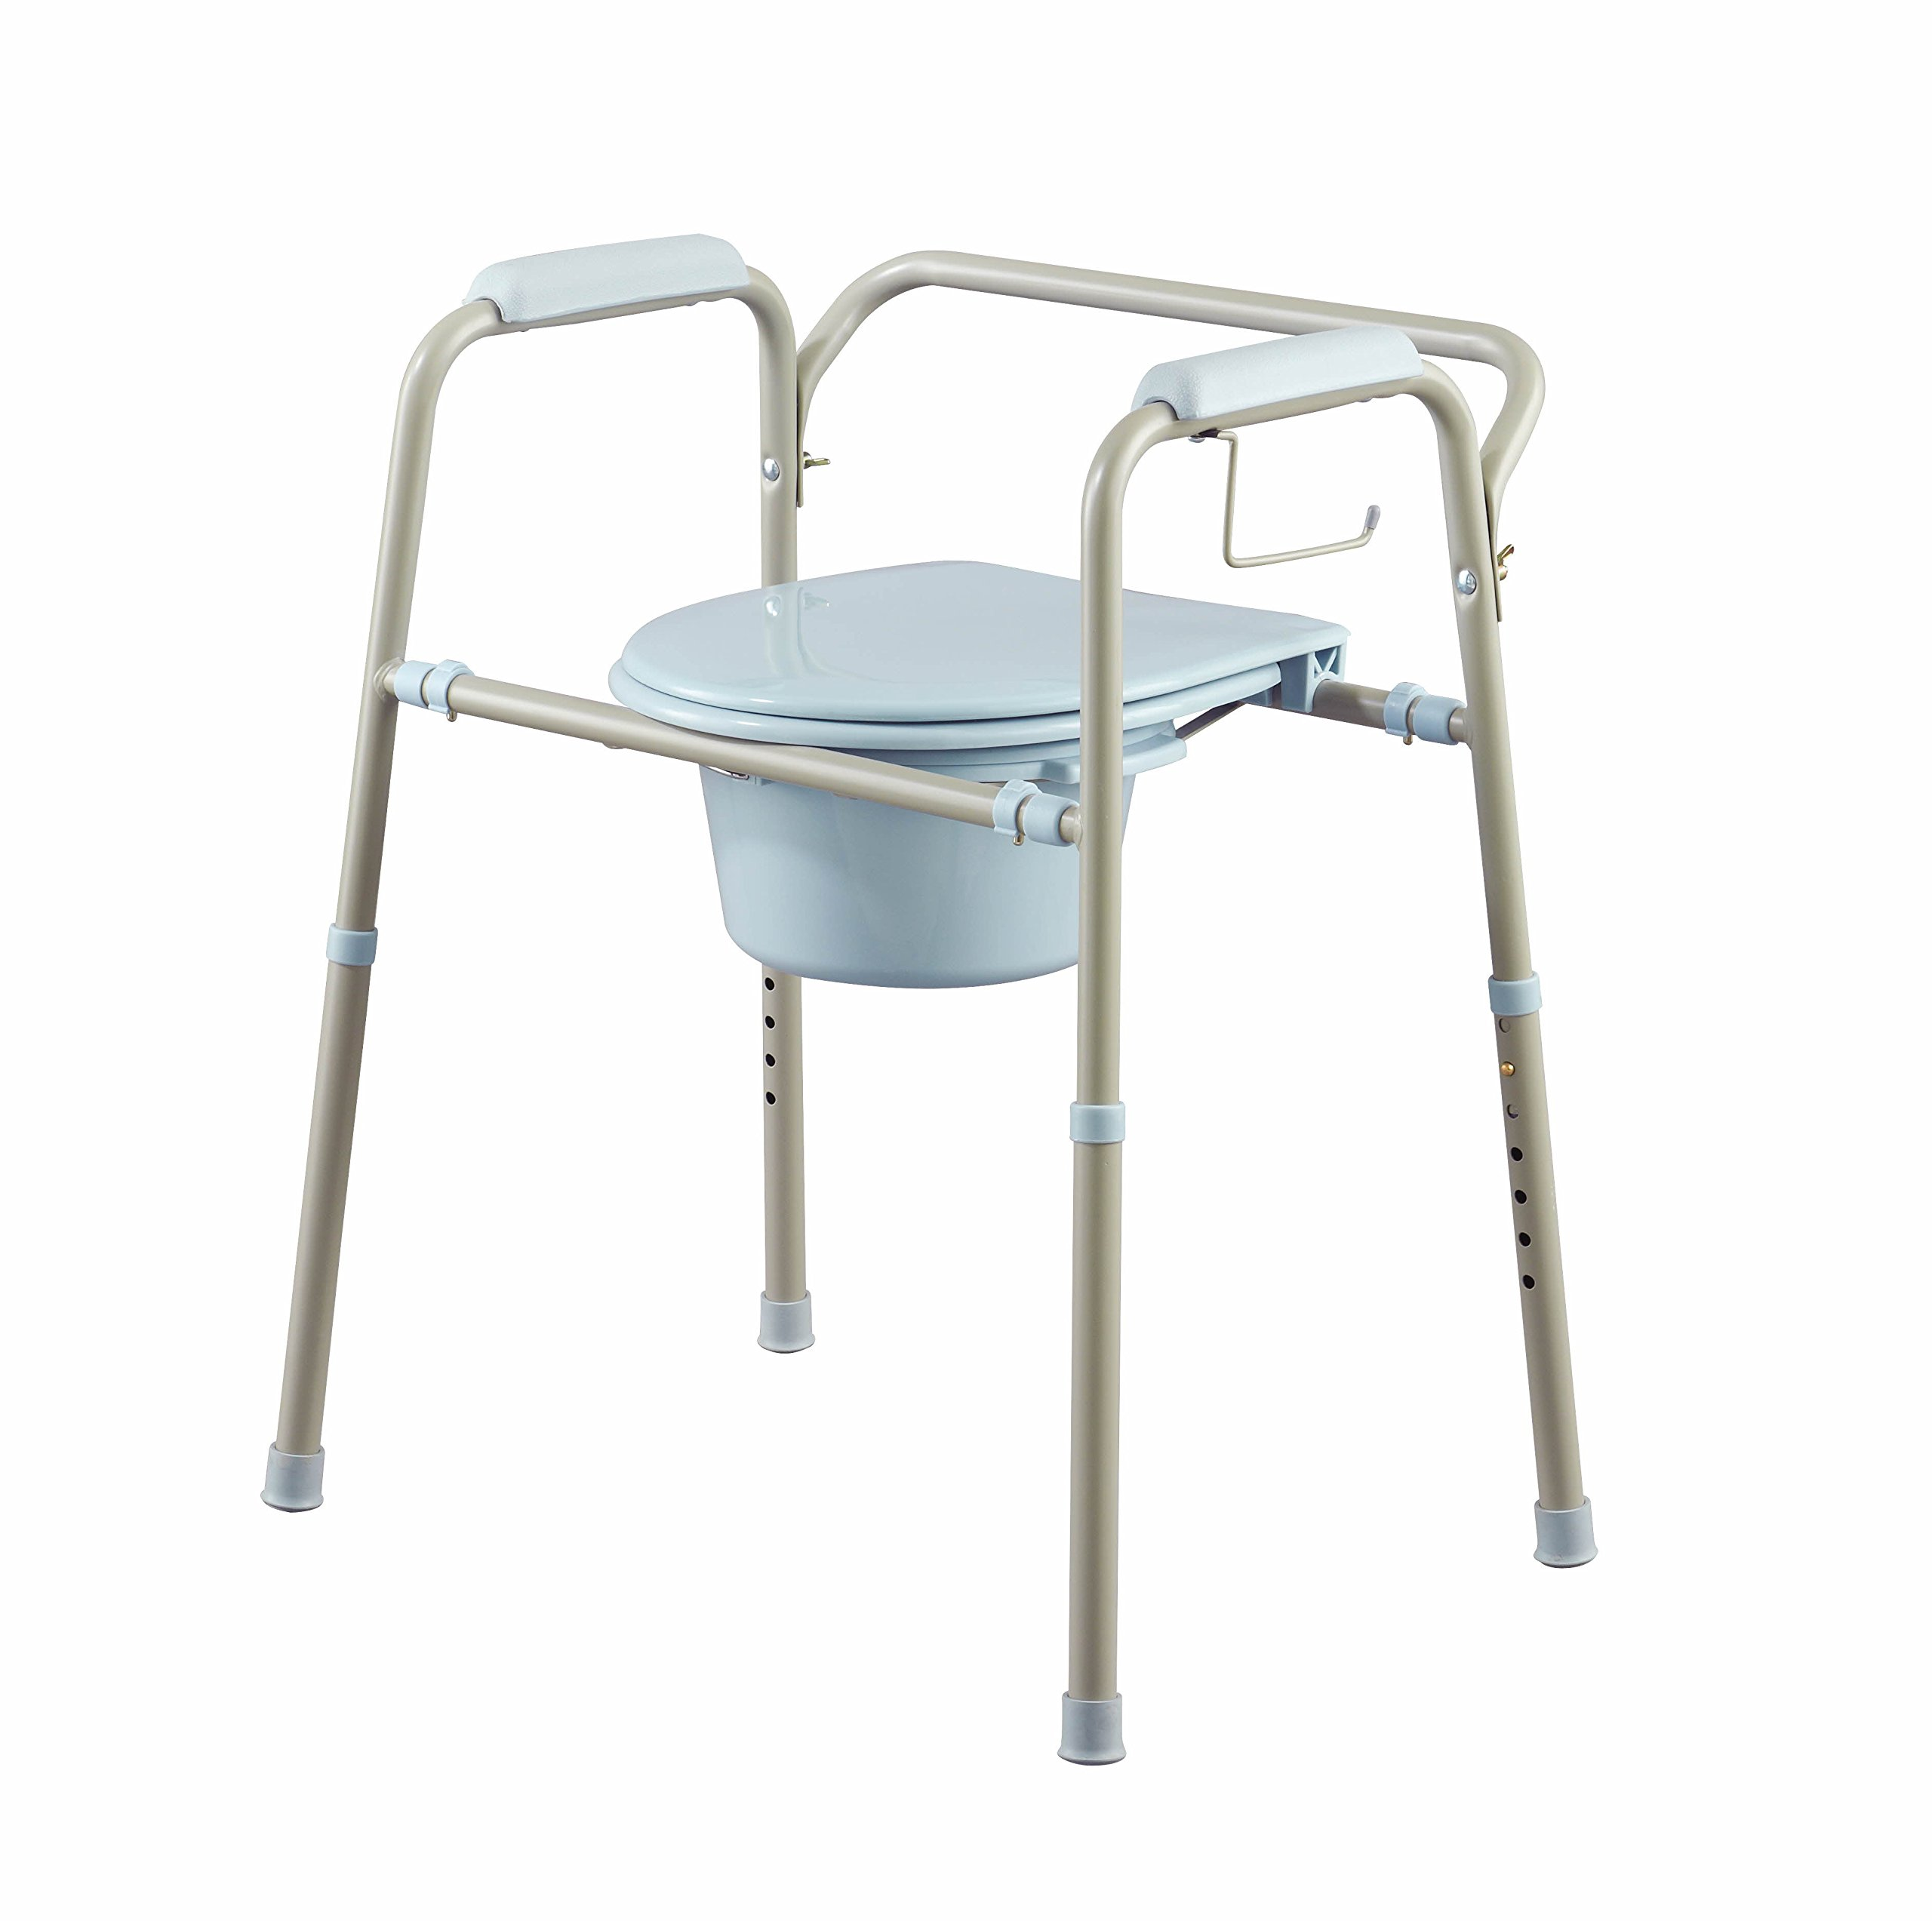 Medline MDS89664KDMB 3-in-1 Steel Bedside Microban Antimicrobial Protection Commode, Light Grey with Blue Accent